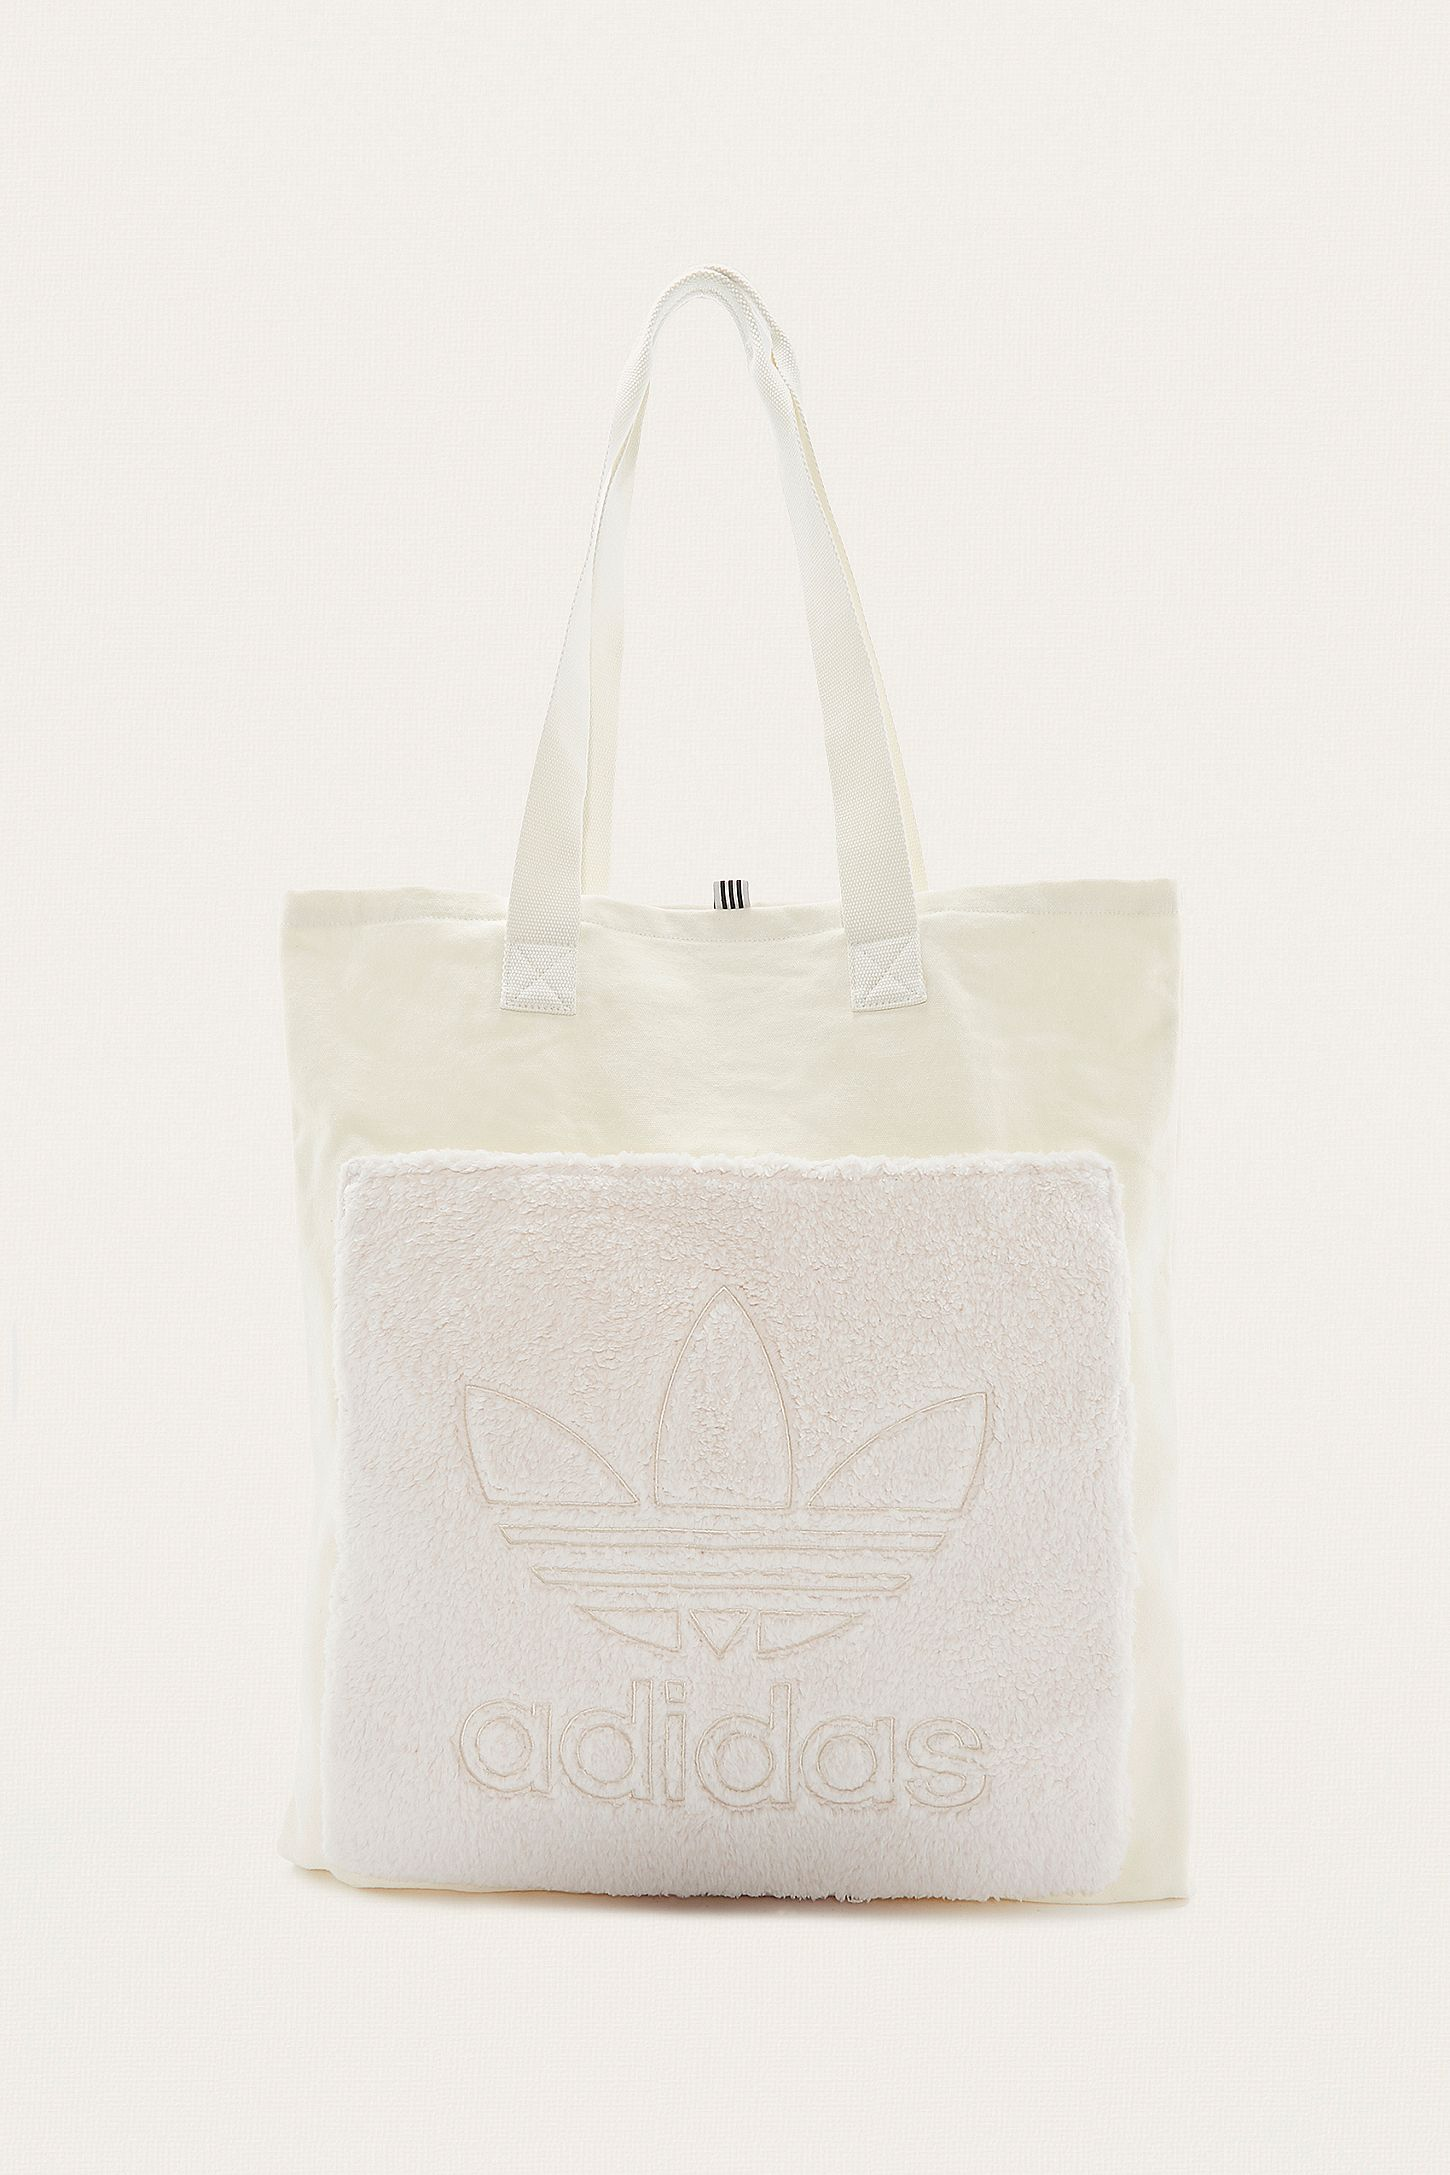 9e7324291b adidas Originals Trefoil Canvas Tote Bag. Click on image to zoom. Hover to  zoom. Double Tap to Zoom